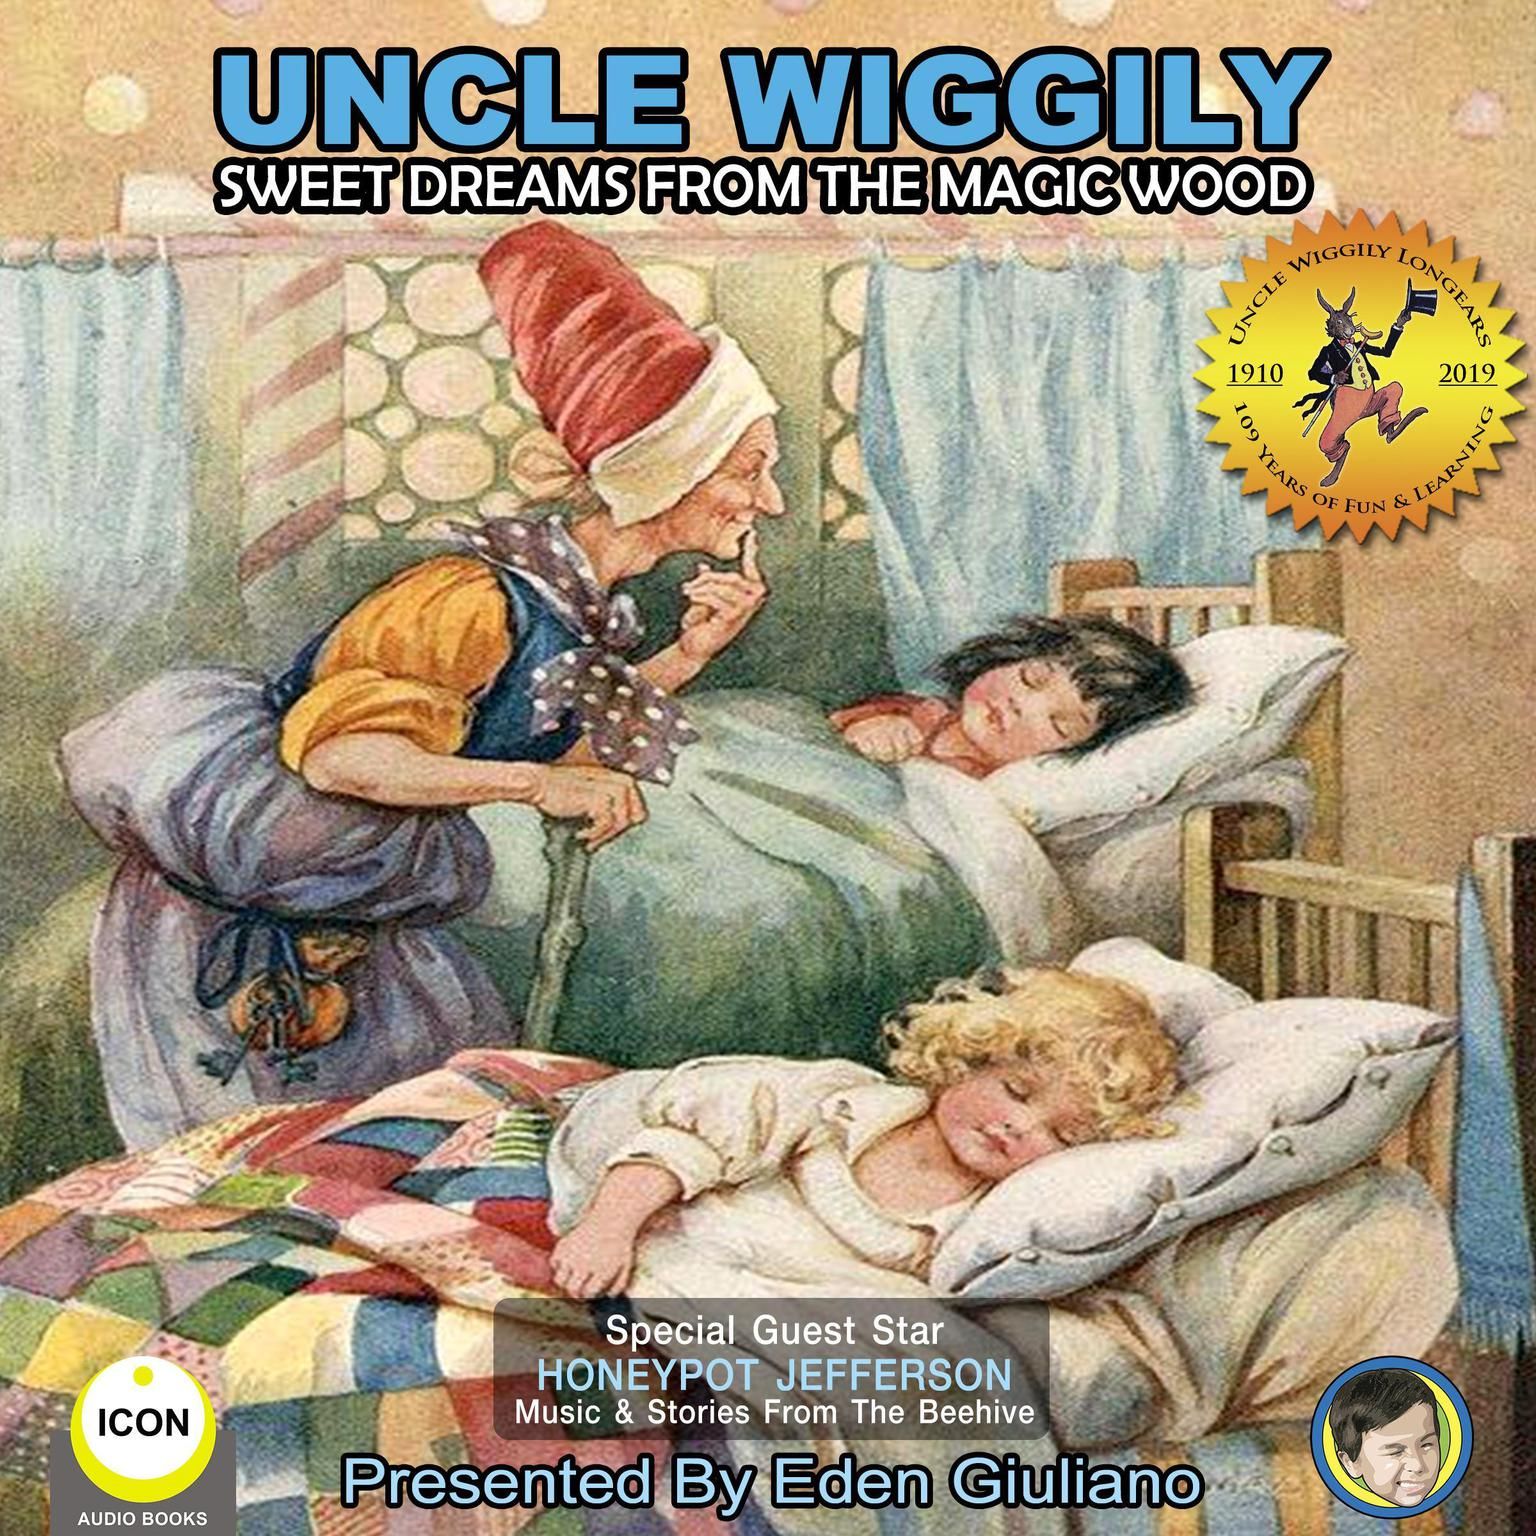 Printable Uncle Wiggily Sweet Dreams From The Magic Wood Audiobook Cover Art